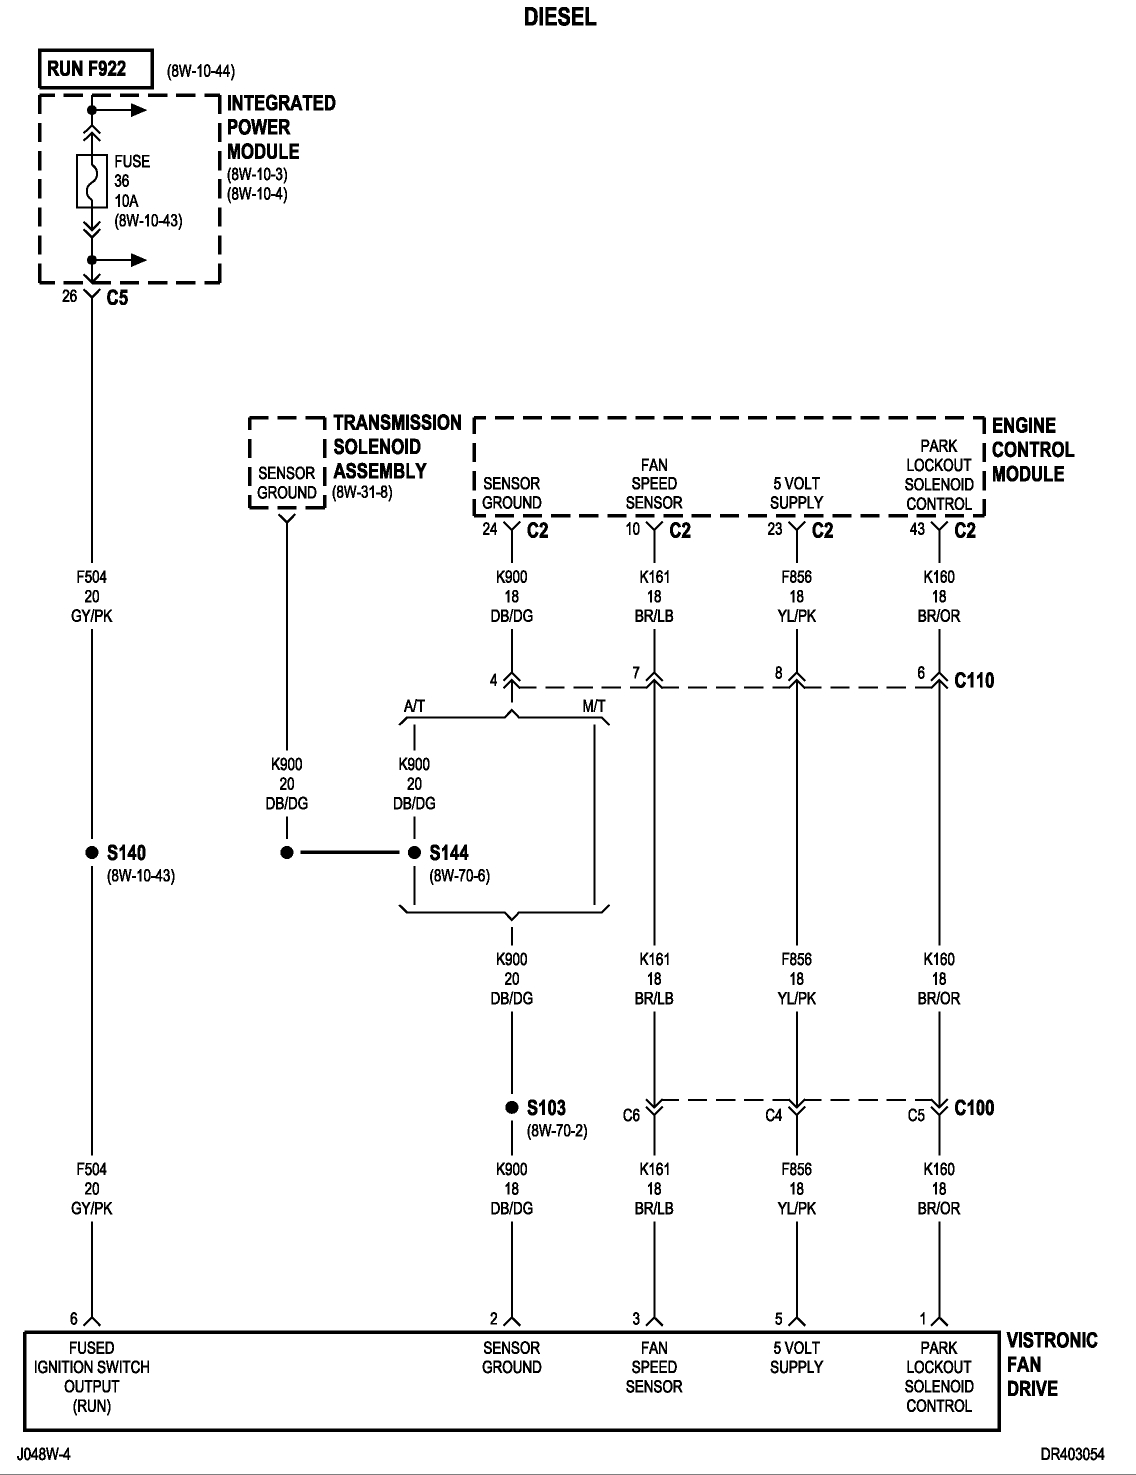 2003 Dodge Ram 2500 Diesel Wiring Diagram